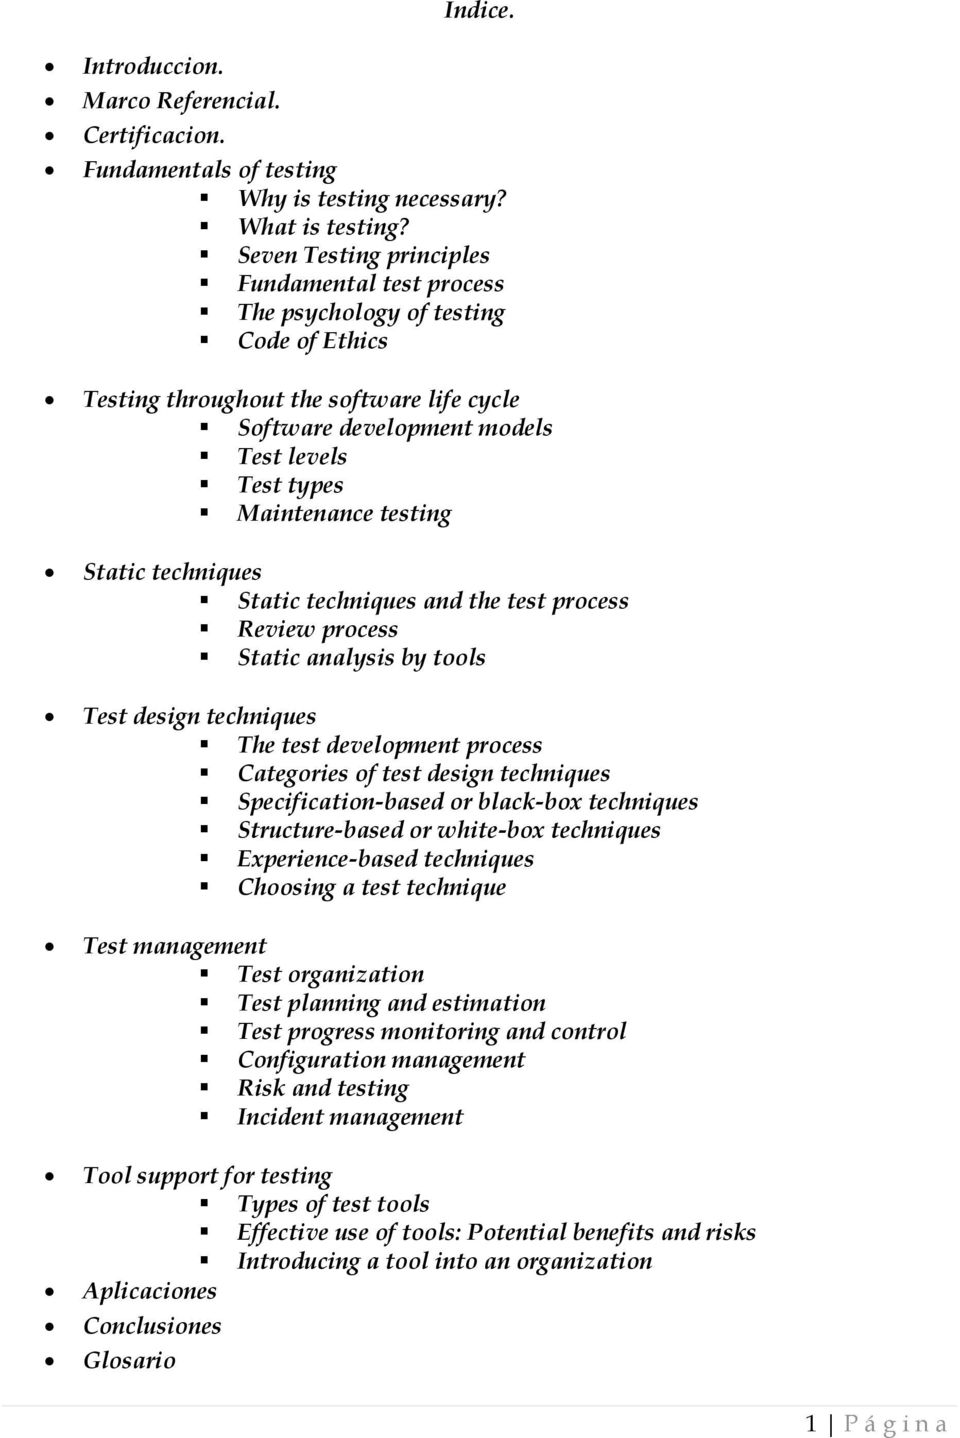 testing Static techniques Static techniques and the test process Review process Static analysis by tools Test design techniques The test development process Categories of test design techniques